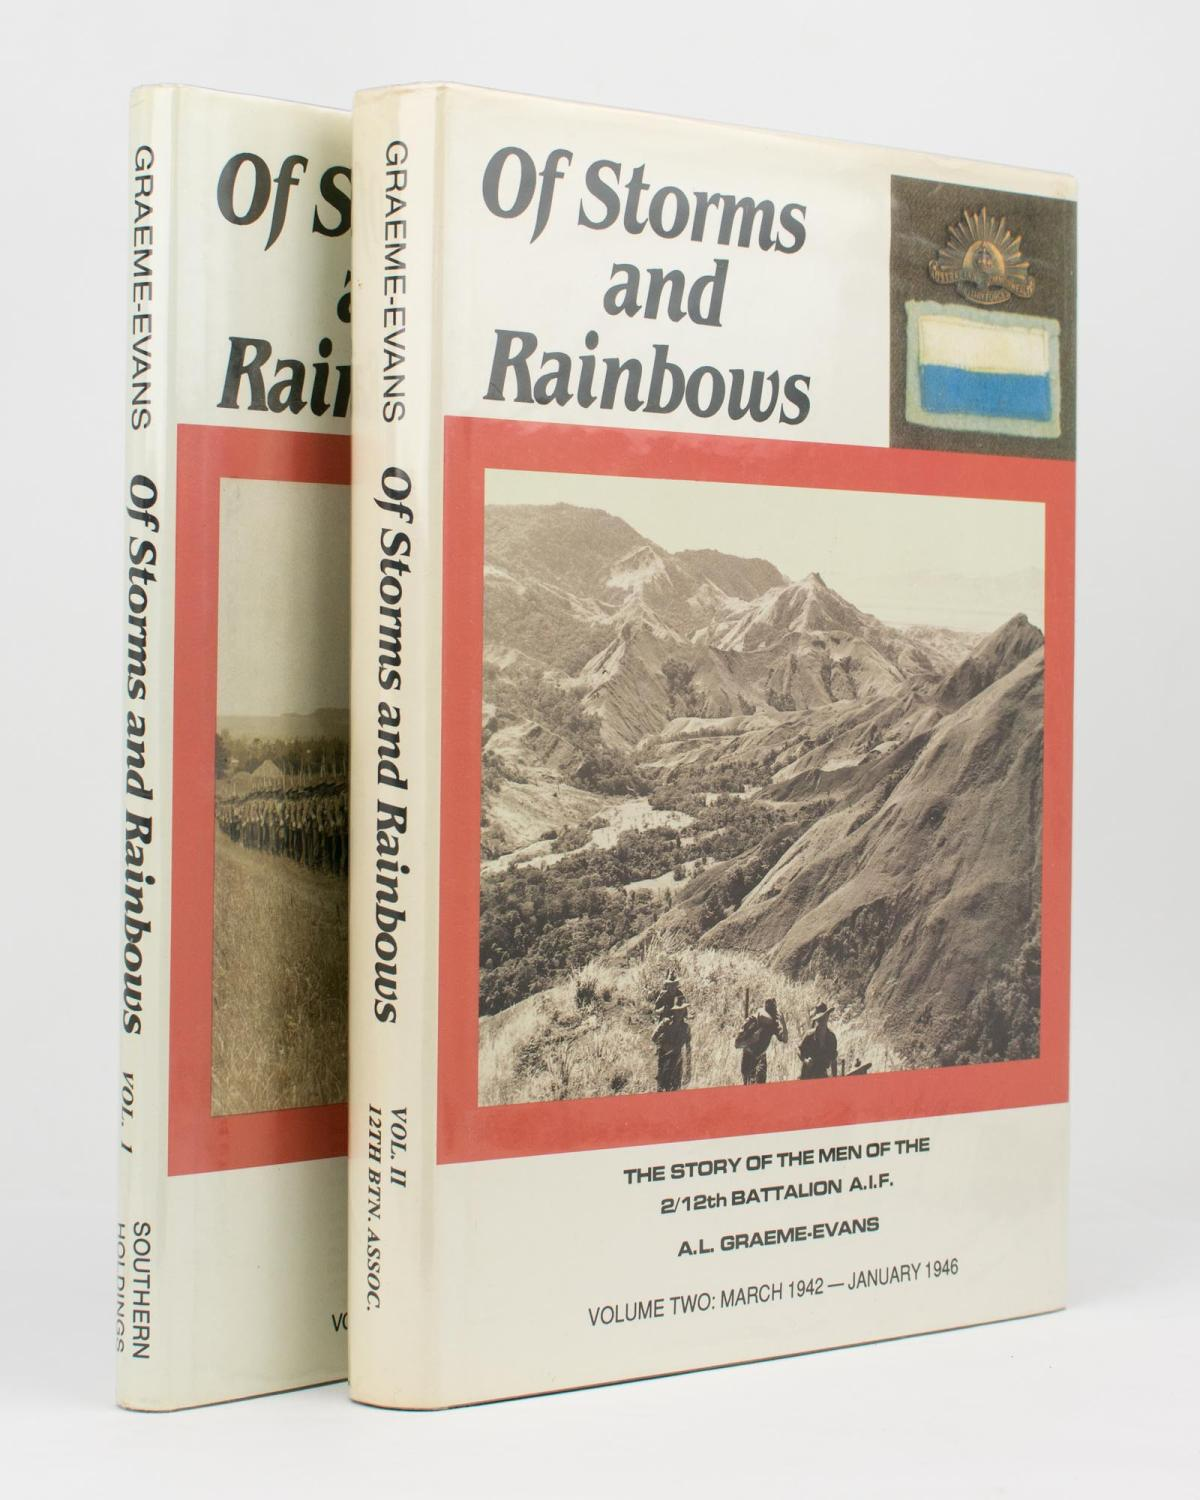 Of_Storms_and_Rainbows_The_Story_of_the_Men_of_the_212th_Battalion_AIF_Volume_1_October_1939__March_1942_Volume_2_March_1942__January_1946